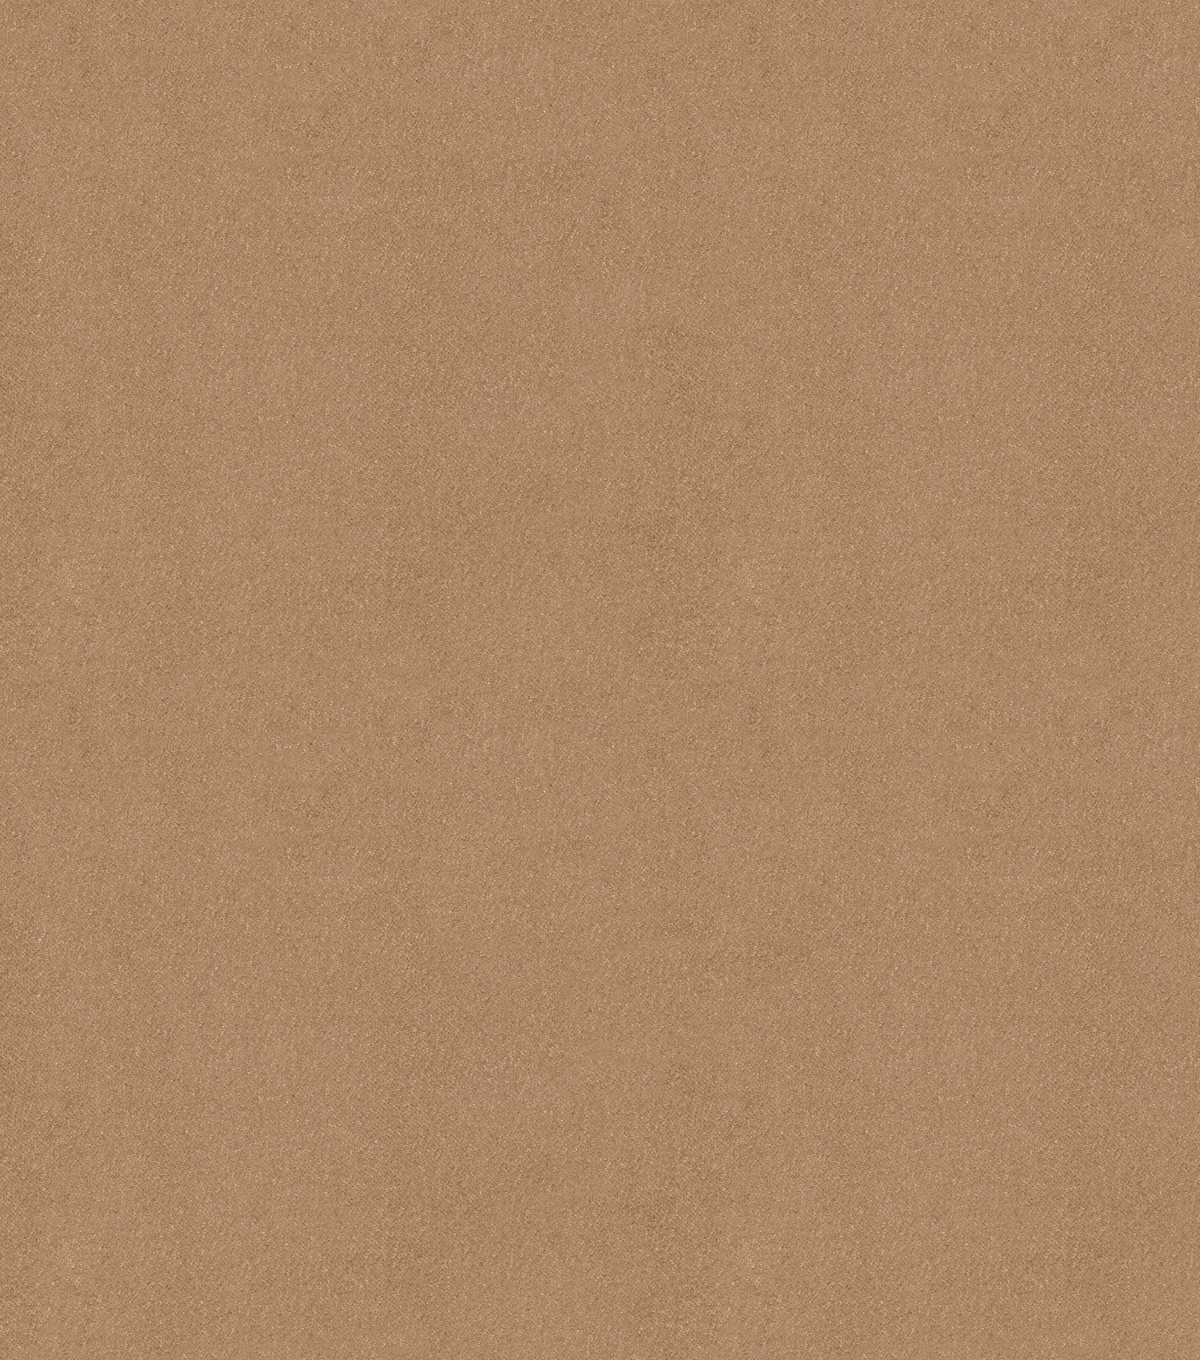 Signature Series Multi Purpose Faux Suede Decor Fabric 58u0022 Taupe